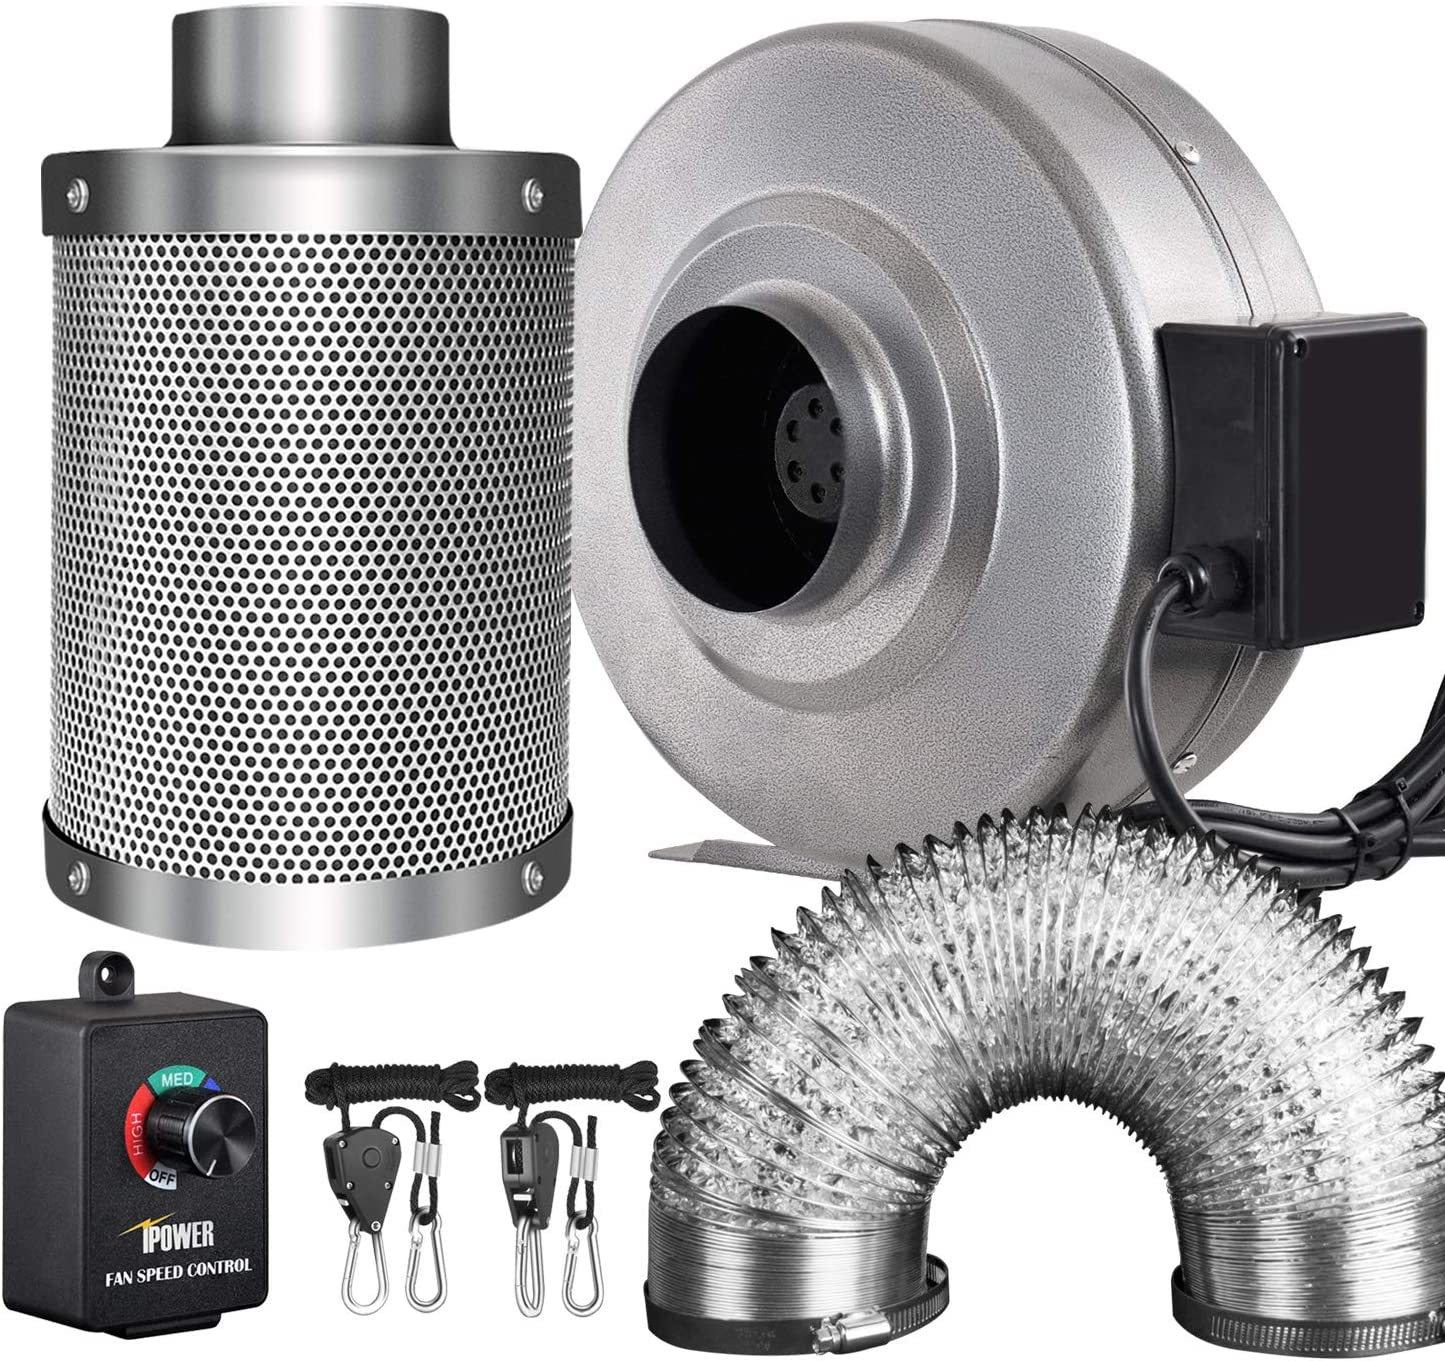 """iPower GLFANXINL4FILT4MD8CTR 4 Inch 190 CFM Inline Fan Carbon Filter 8 Feet Ducting Combo with Variable Speed Controller and Rope Hanger for Grow Tent Ventilation, 4"""" Fan & Filter, Grey"""